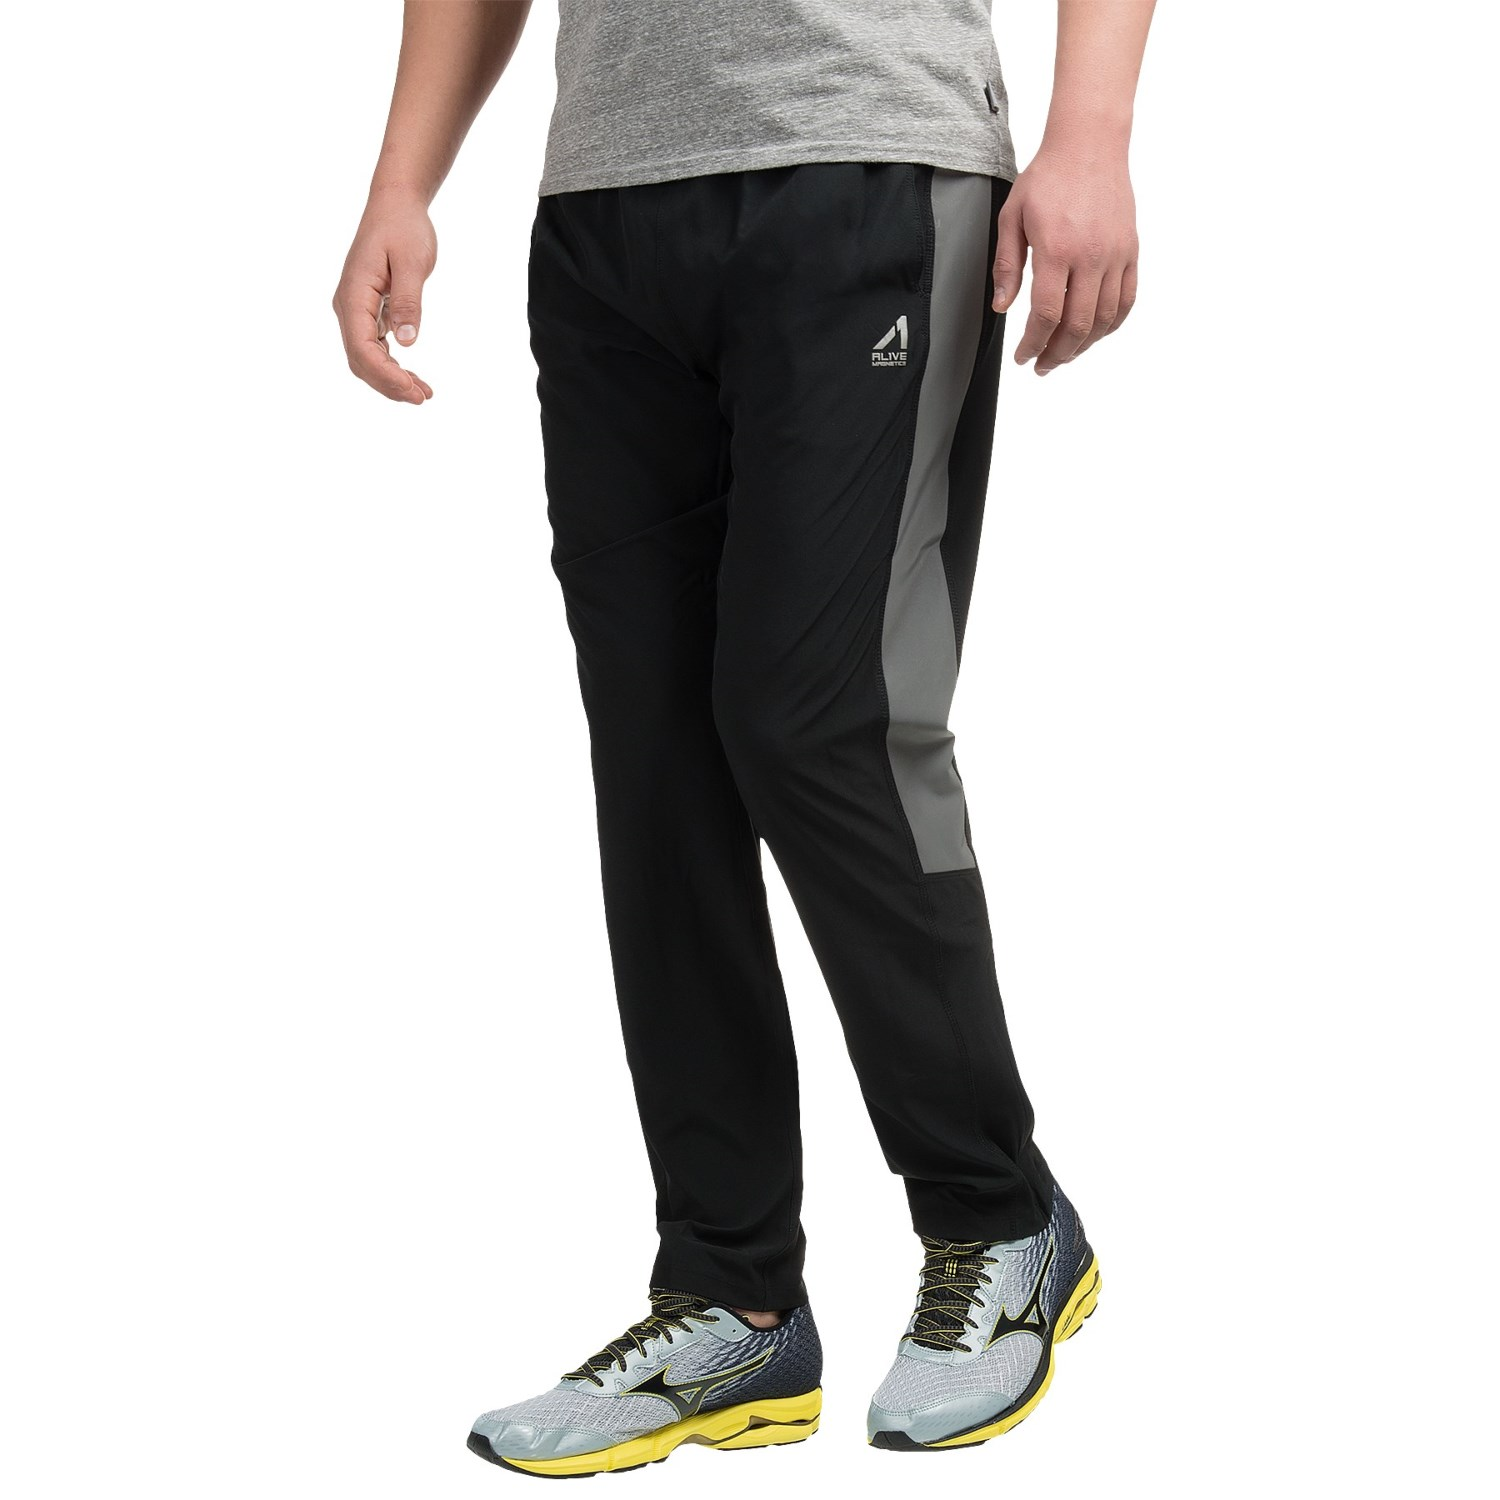 Log miles in men's running apparel and clothing from Dick's Sporting Goods. Browse running apparel especially designed for men including tops, shorts, and pants from Mizuno, Nike, Under Armour & more.